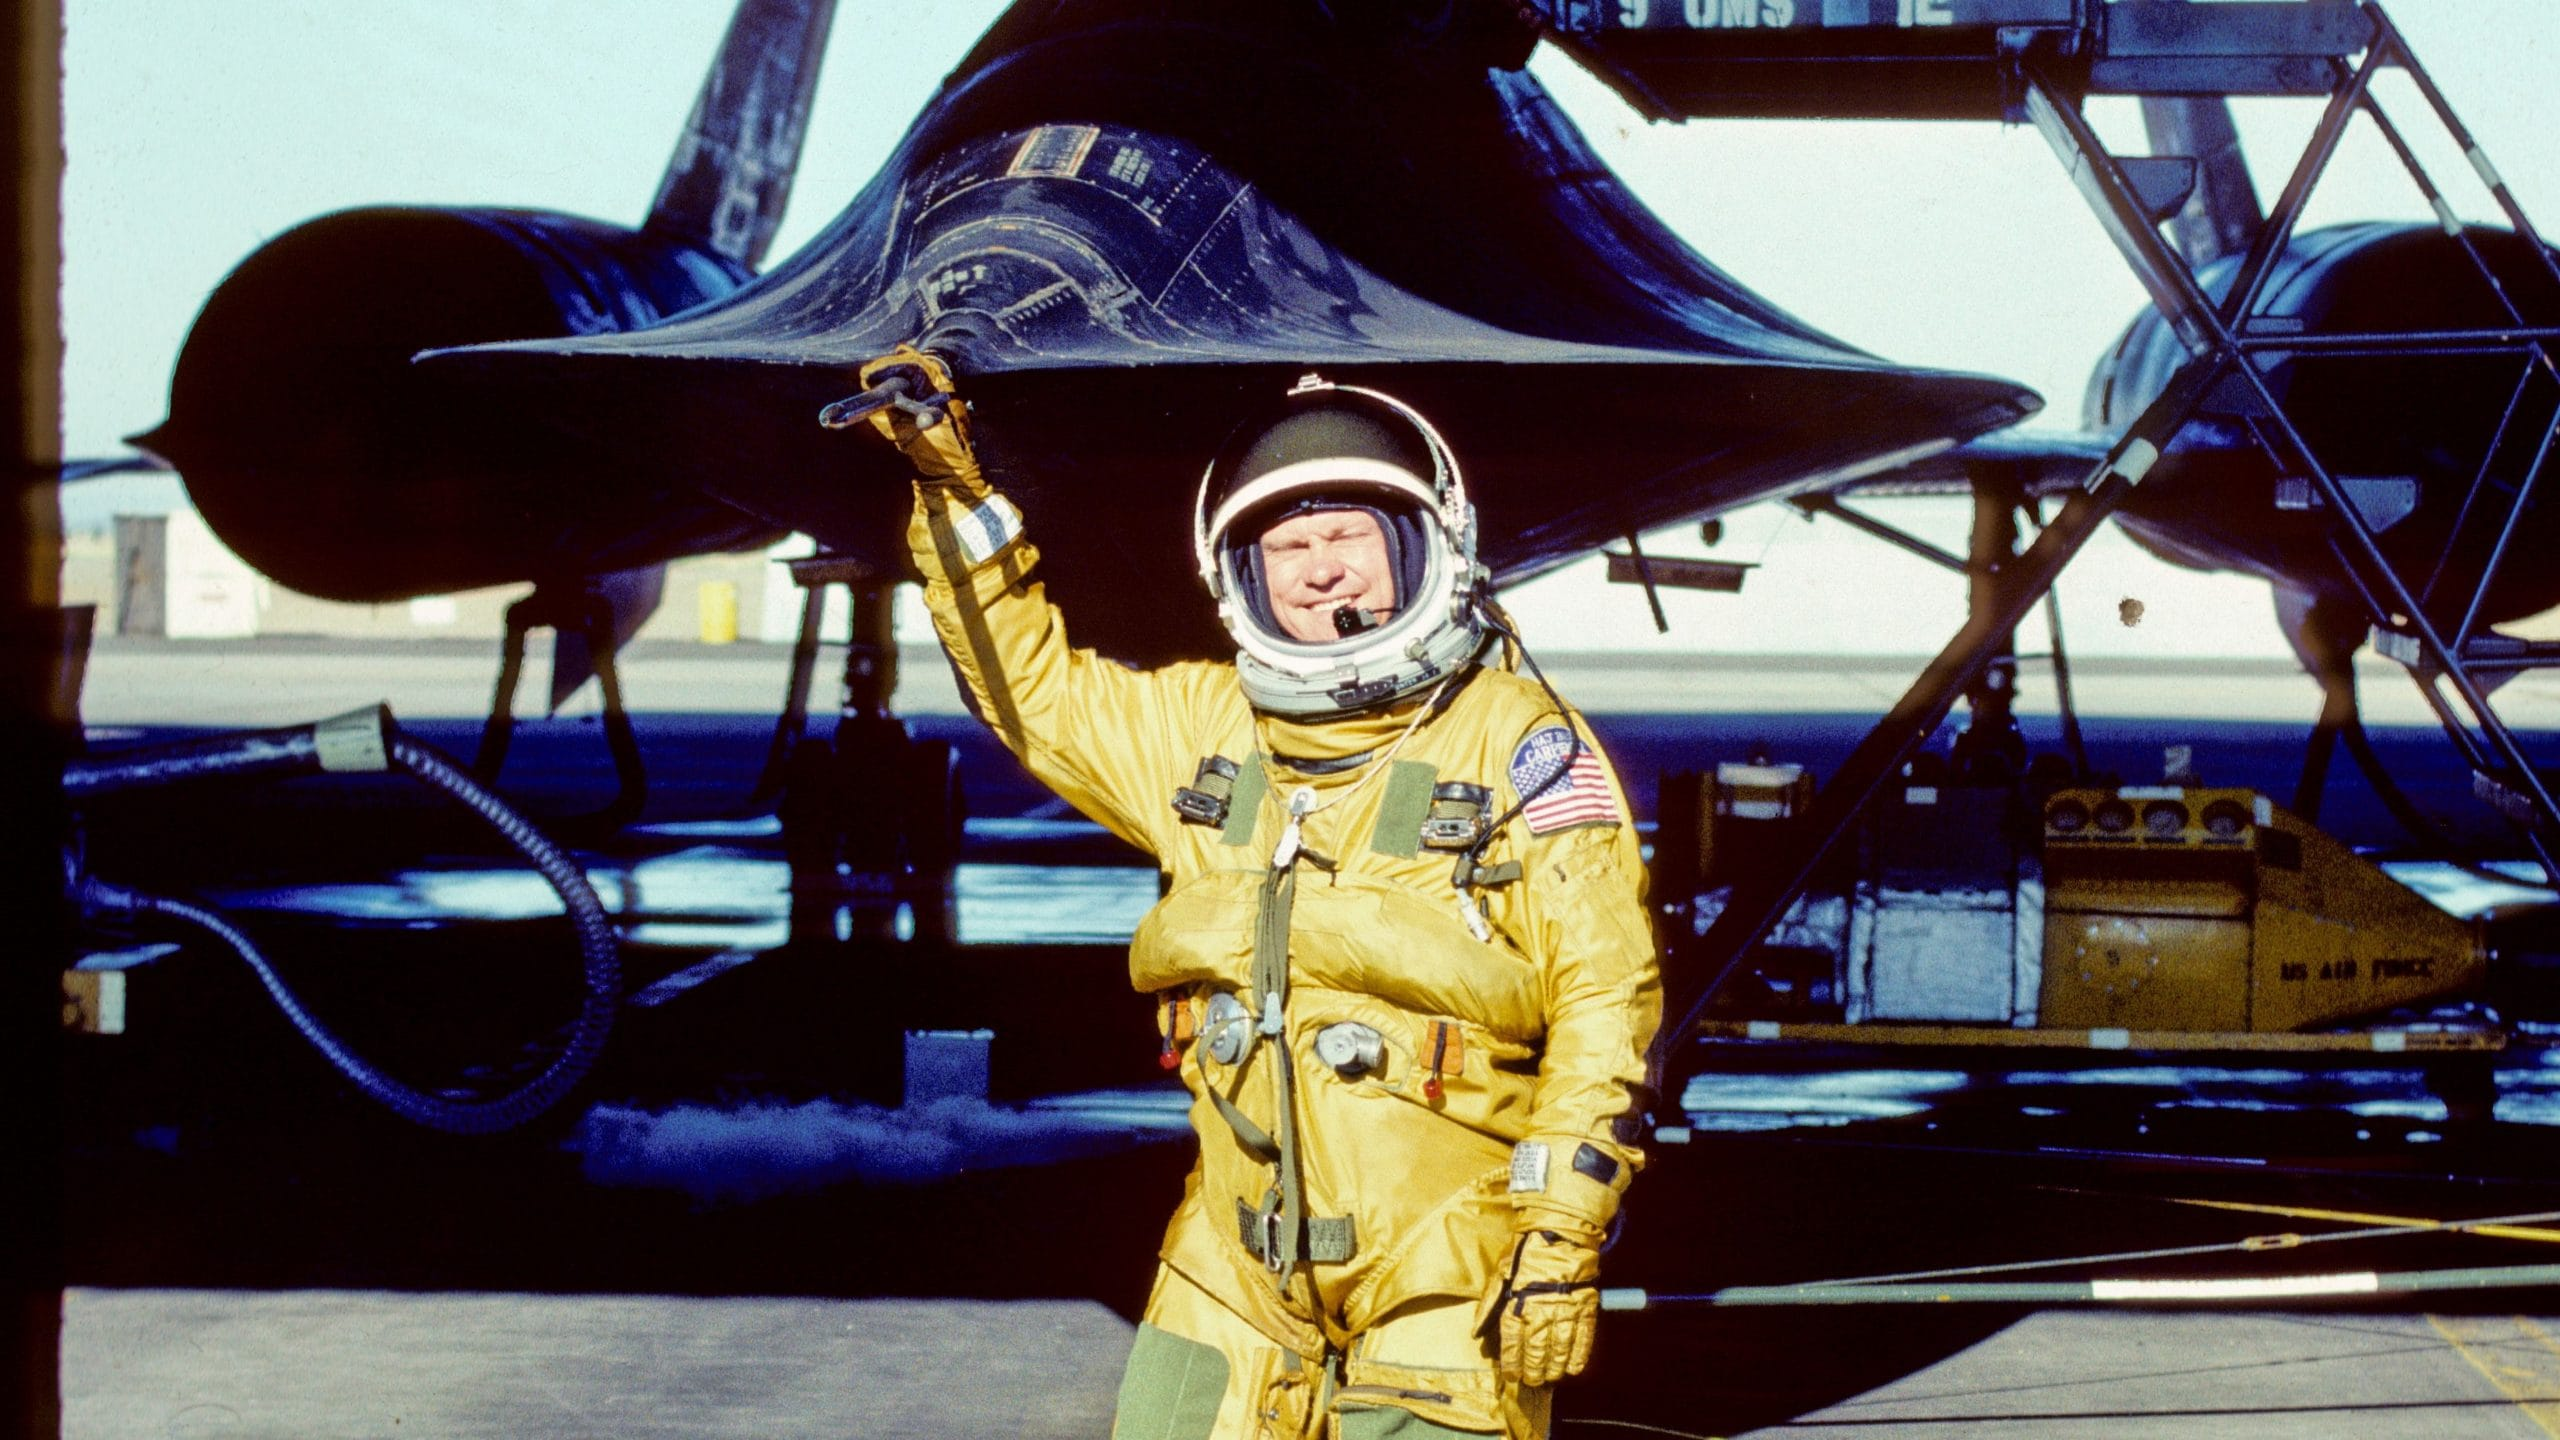 By Order of the President: My Most Important SR-71 Mission